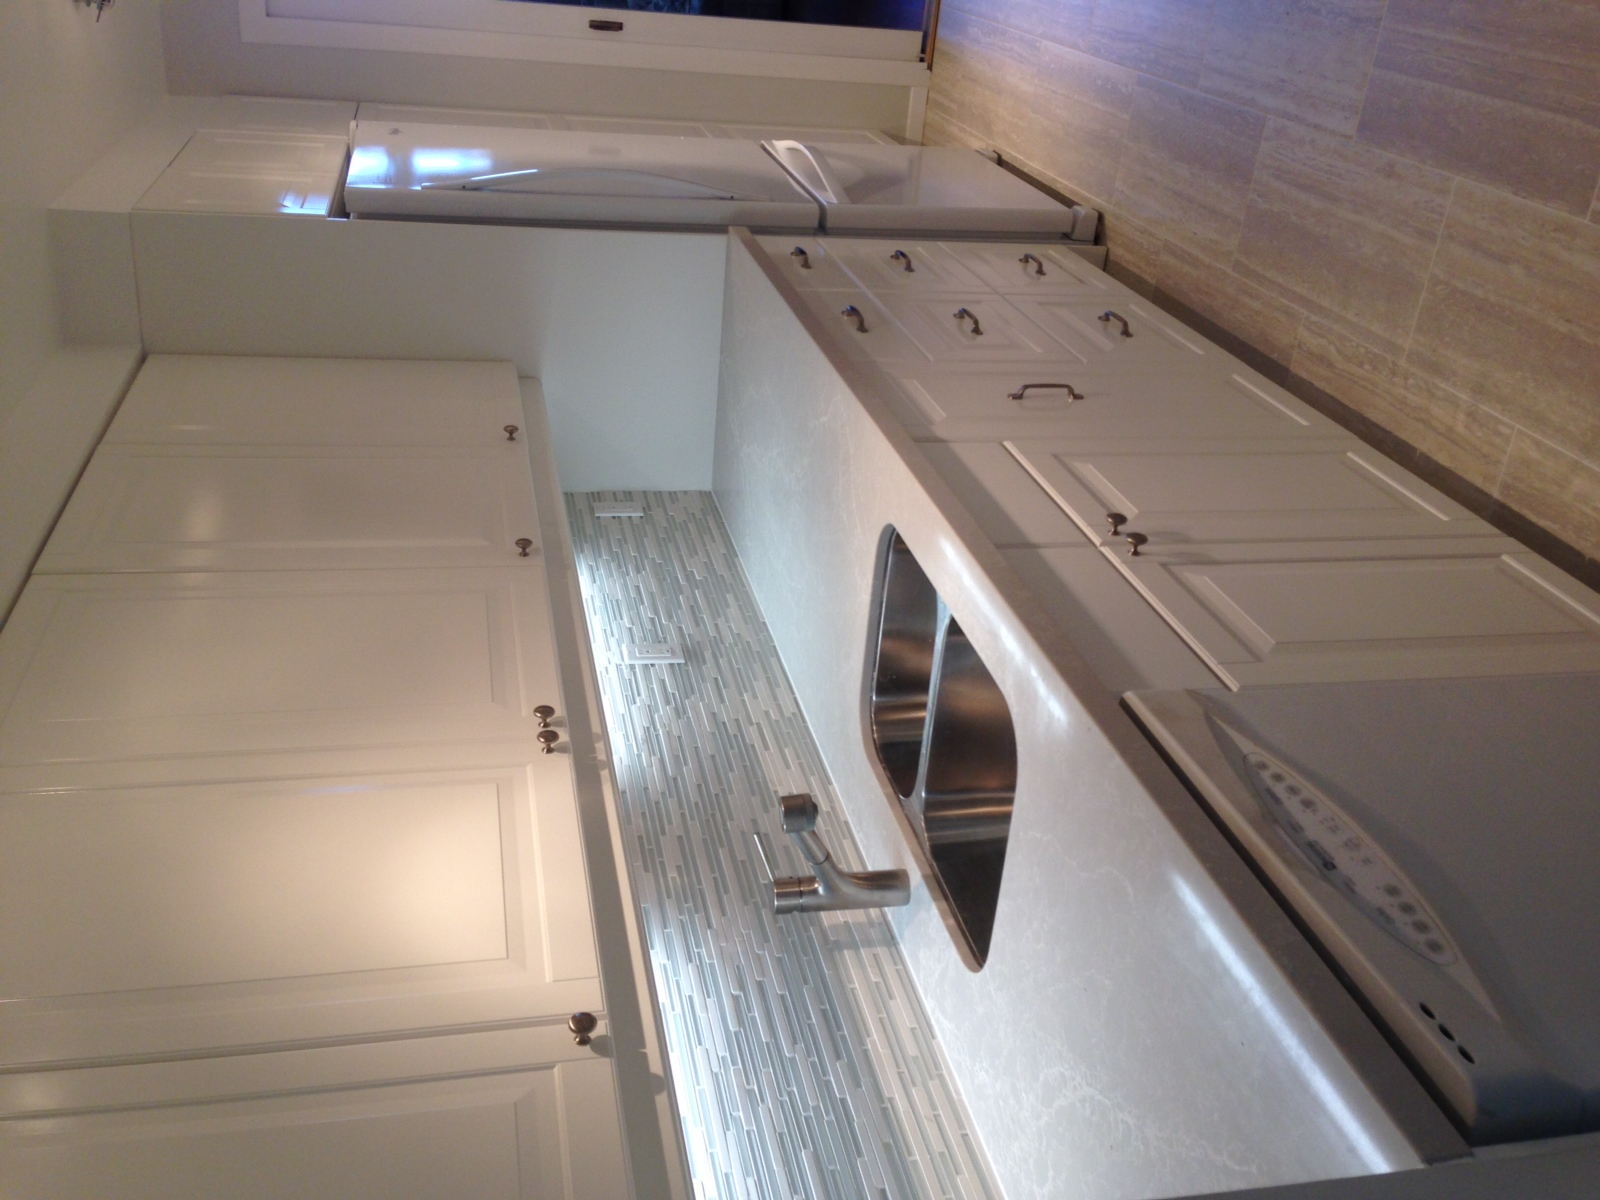 cabinets by Ikea/ tile by Saltillo Imports/ Caeserstone countertops by York Fabrica